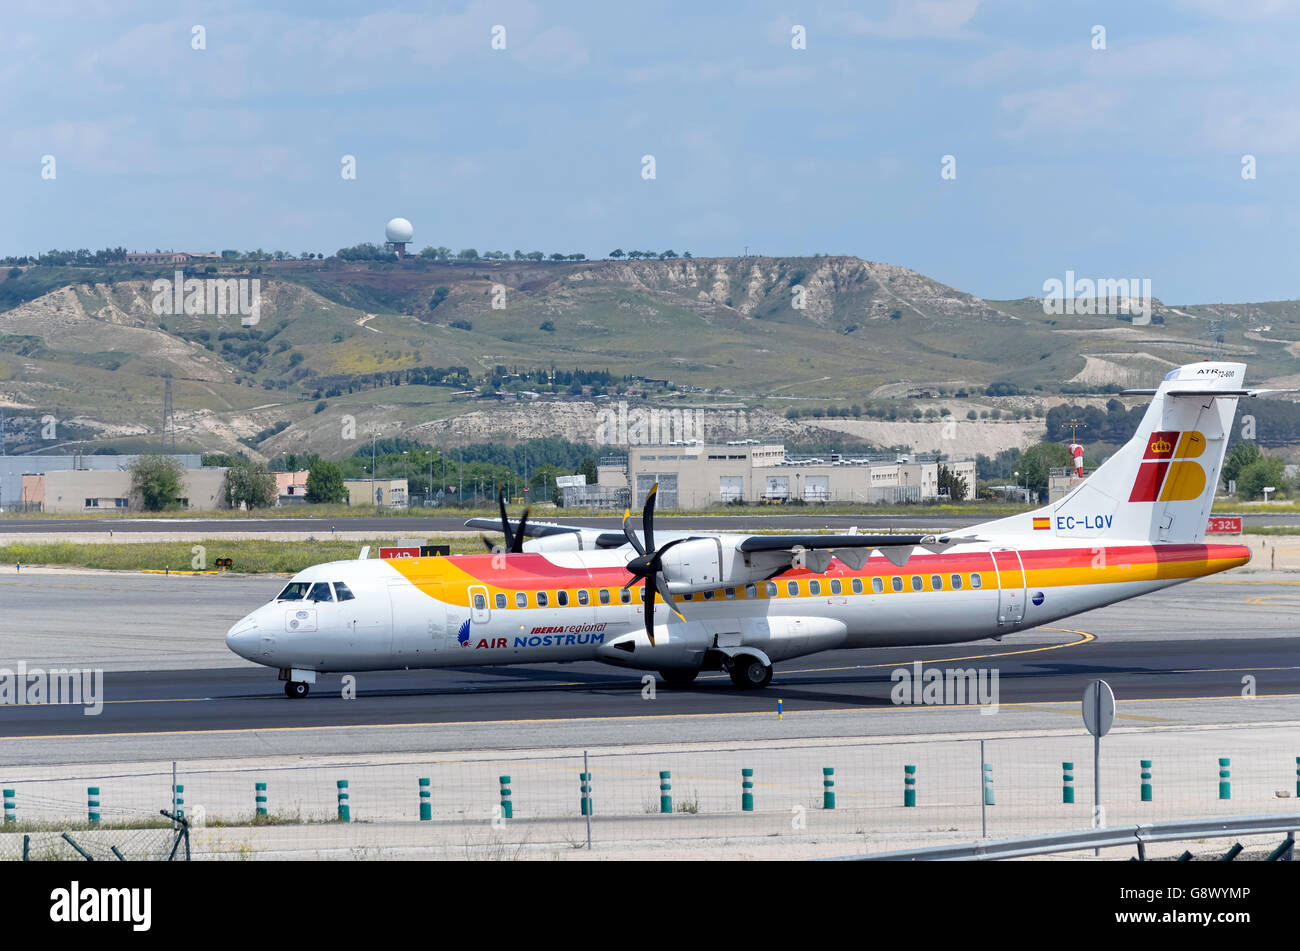 Aircraft -ATR 72 - 600- of -Air Nostrum- airline, direction to runway of Madrid-Barajas airport, ready to take off - Stock Image